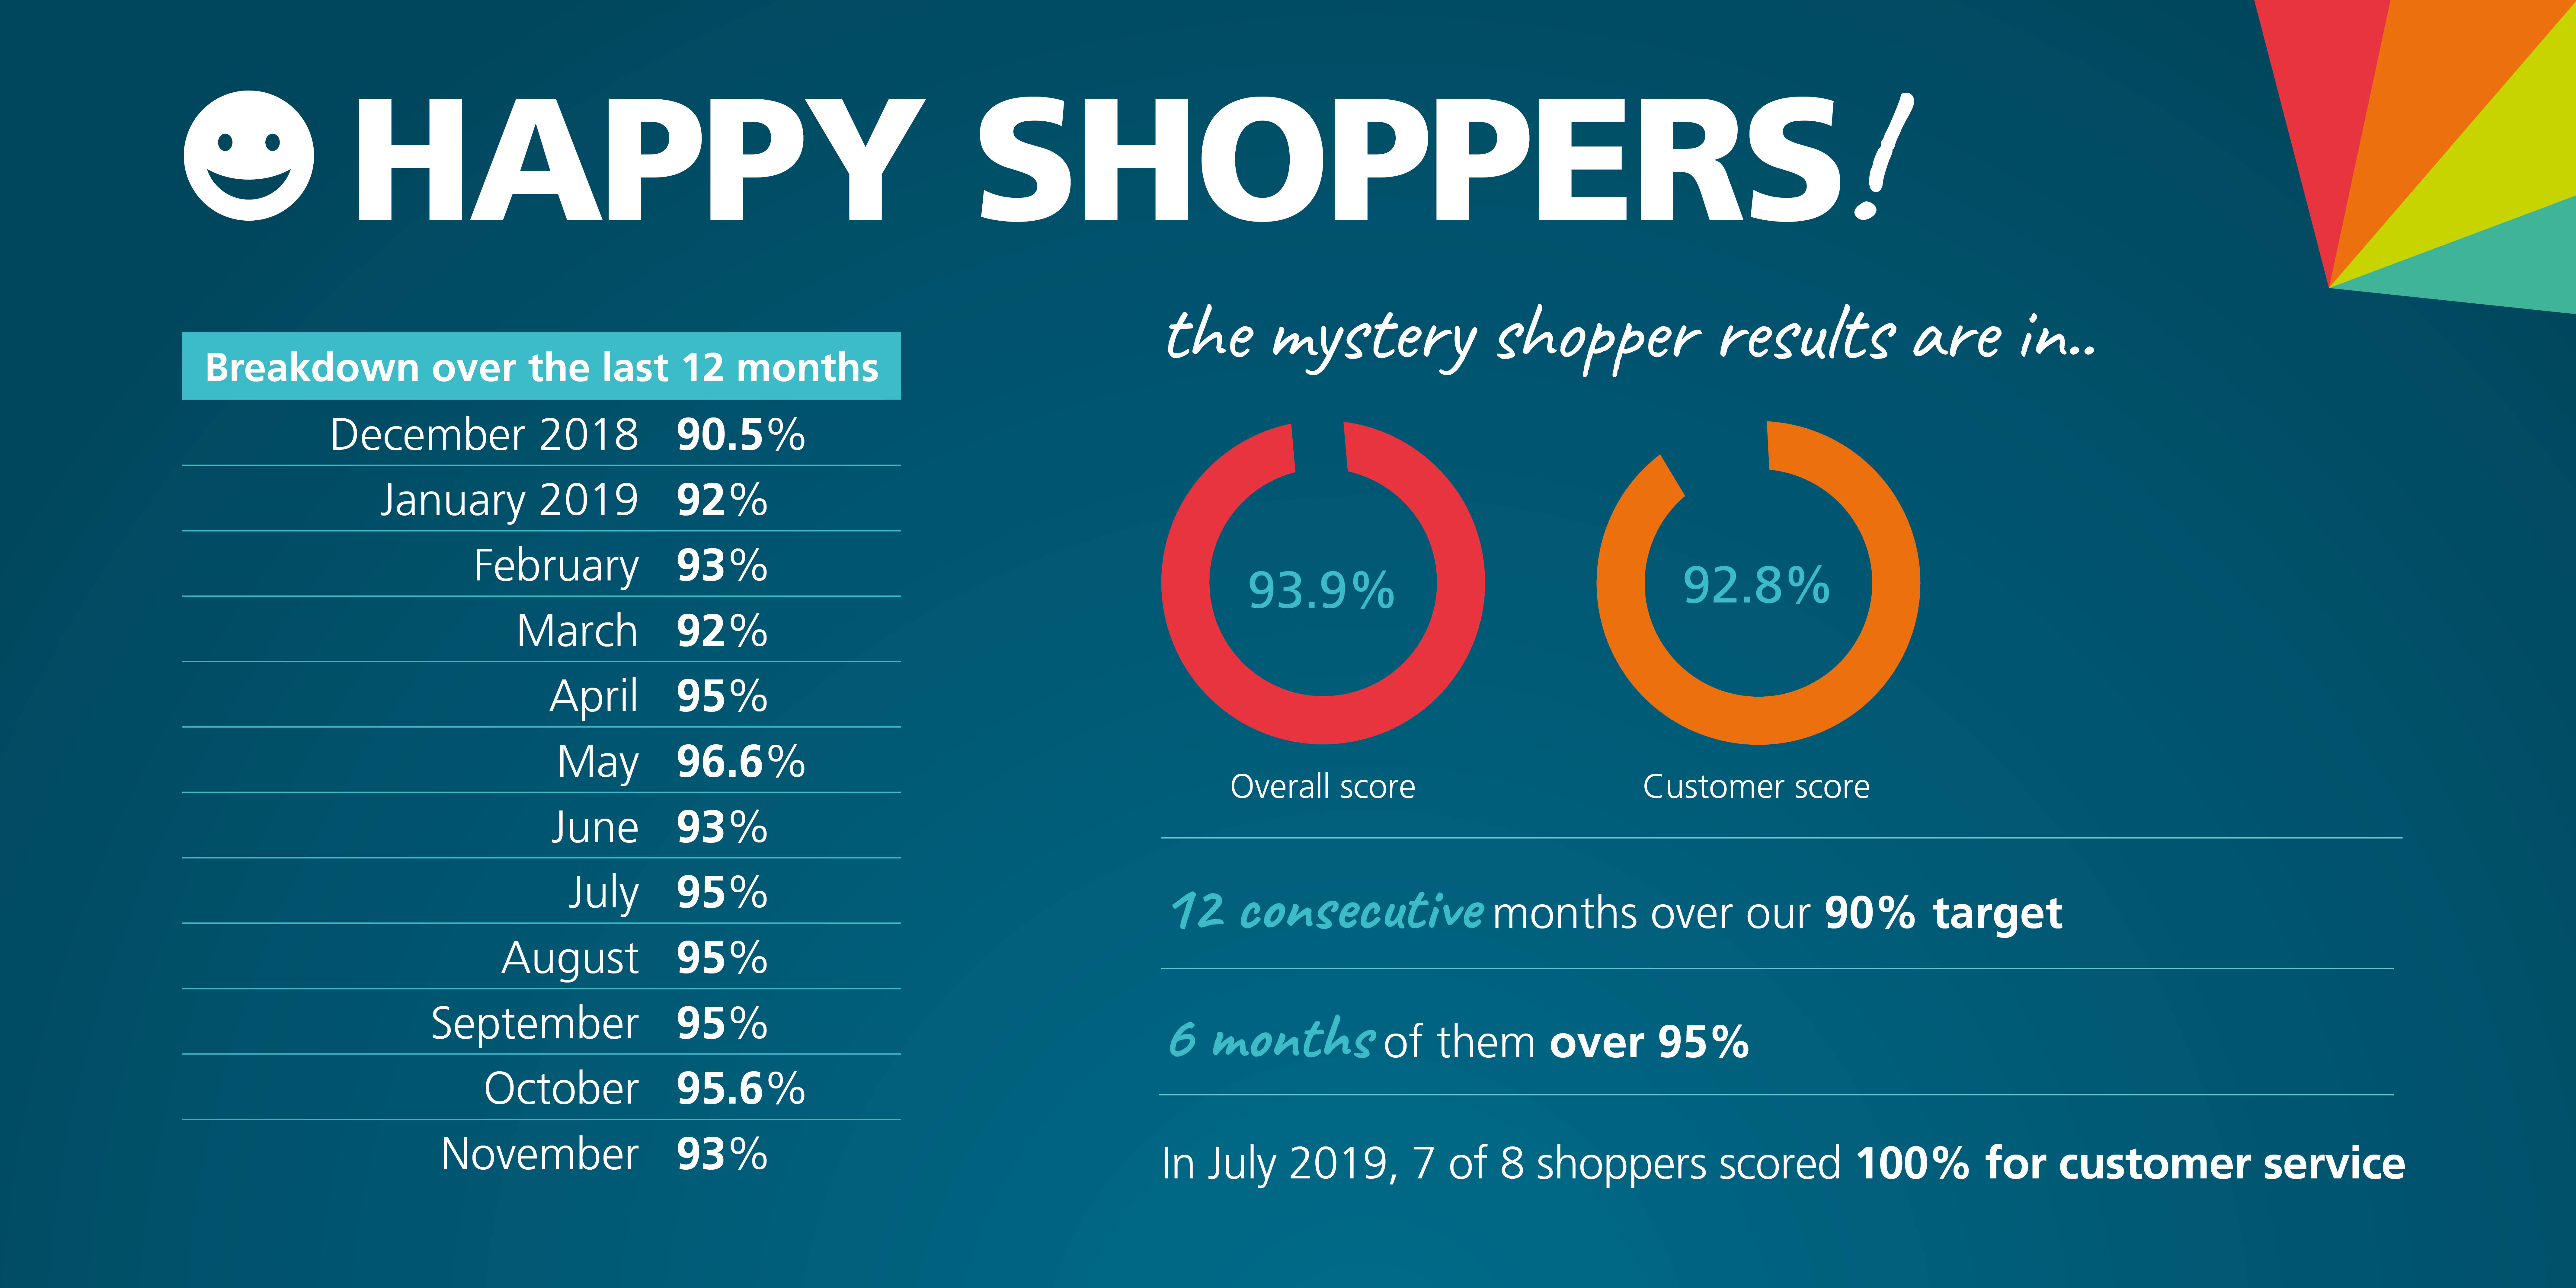 Mystery Shopper results for 2019